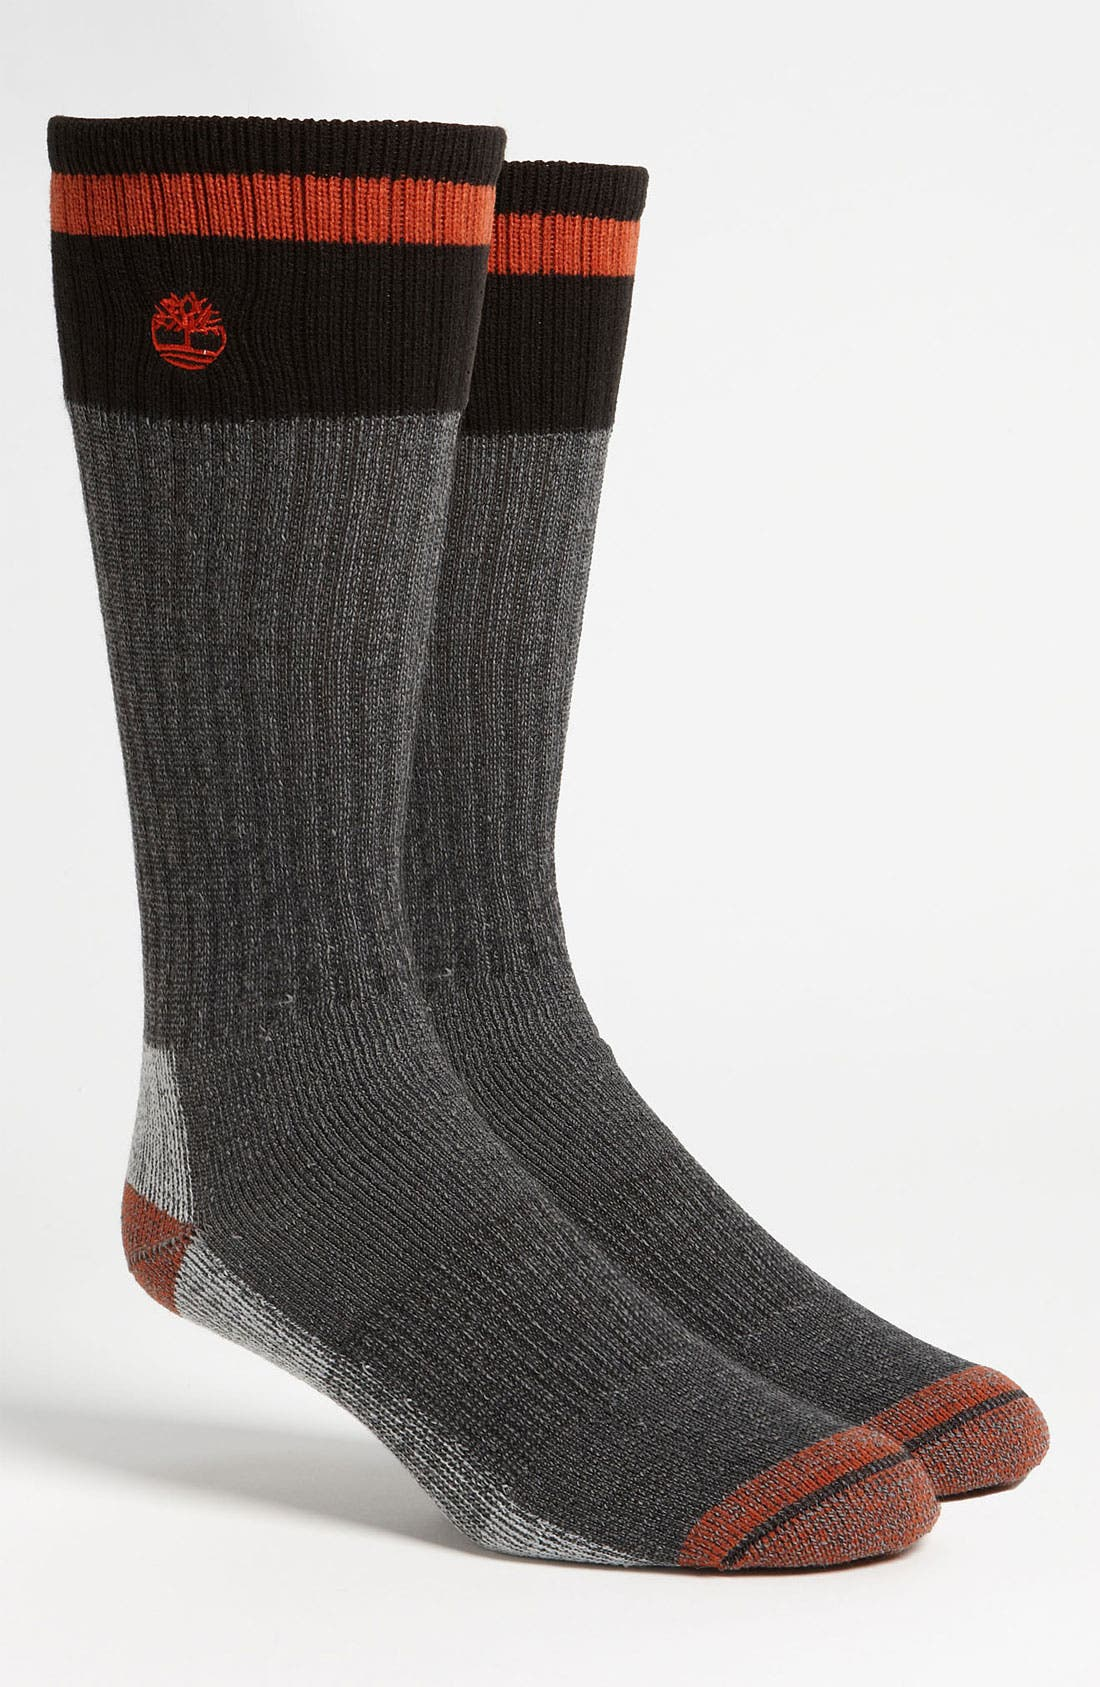 Alternate Image 1 Selected - Timberland Merino Wool Blend Boot Socks (2-Pack)